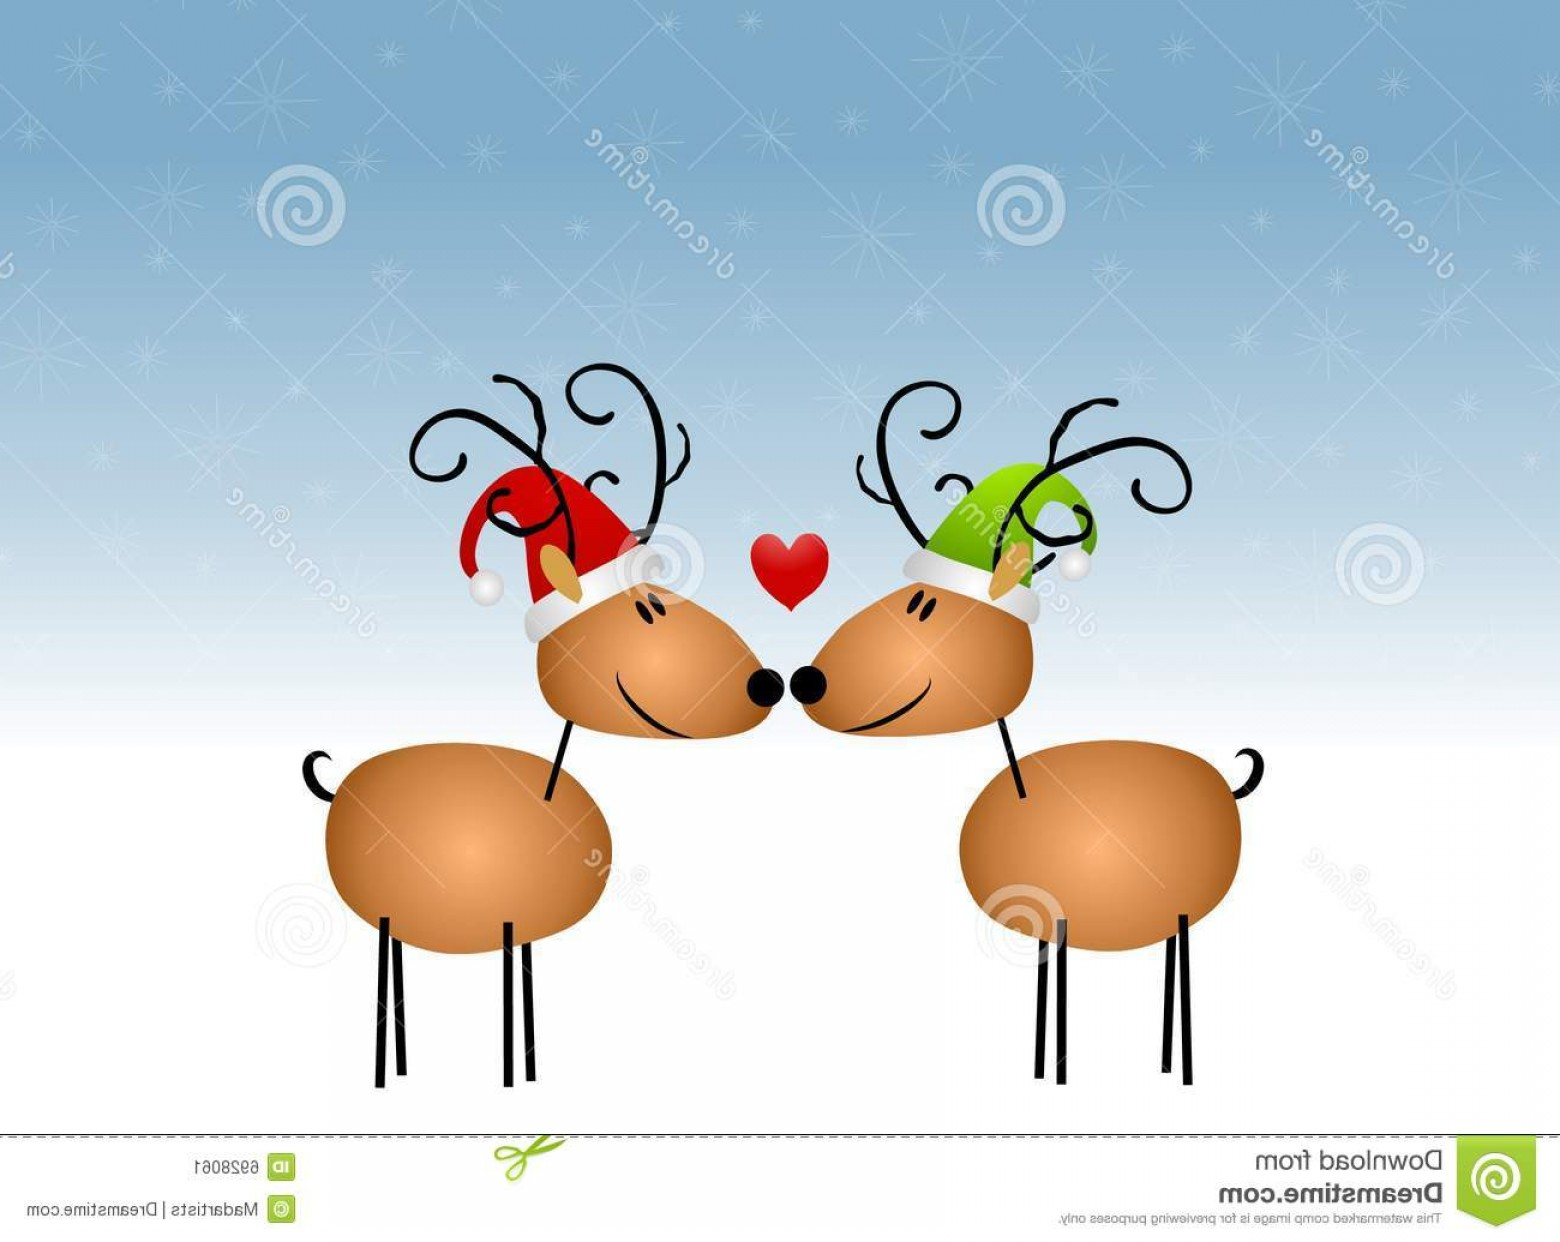 Kissing Reindeer Silhouette Vector: Stock Image Kissing Reindeer Cartoon Image